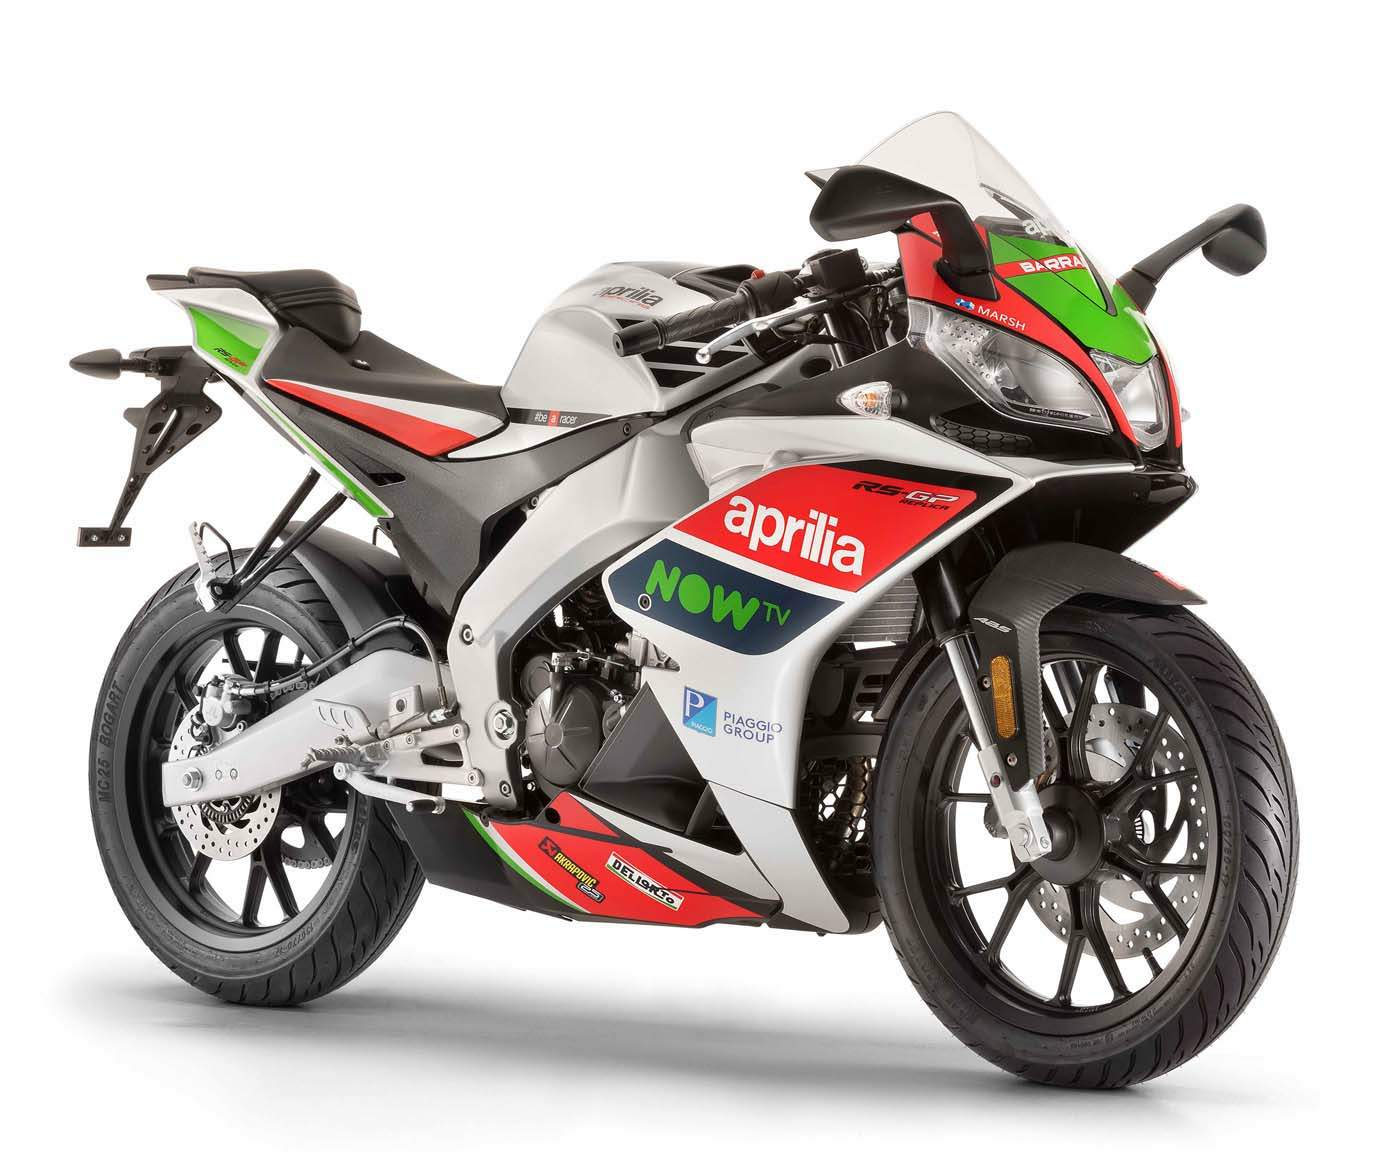 aprilia rs 125 gp replica. Black Bedroom Furniture Sets. Home Design Ideas